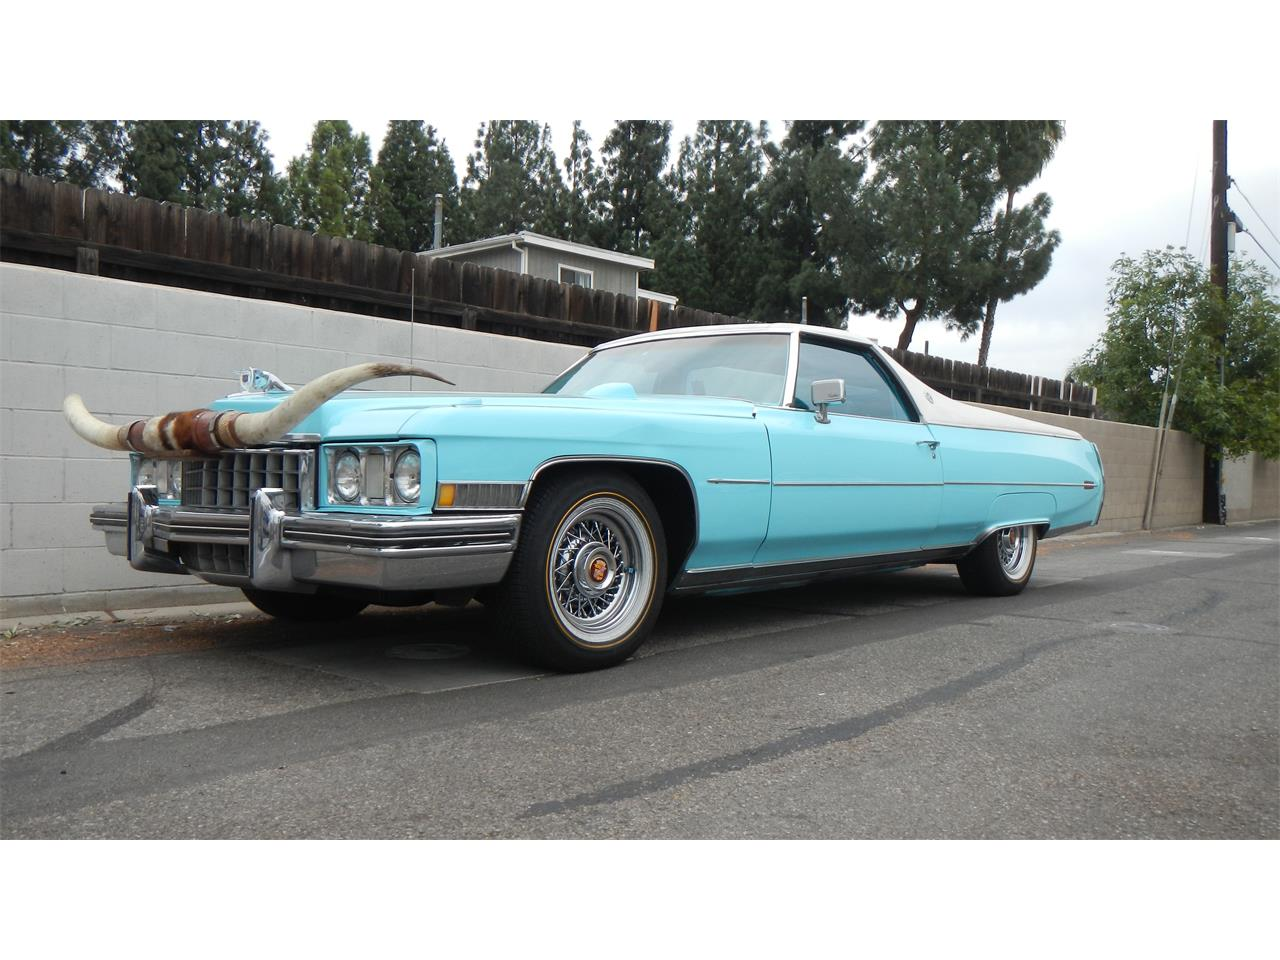 1973 Cadillac Eldorado for sale in Woodland Hills, CA